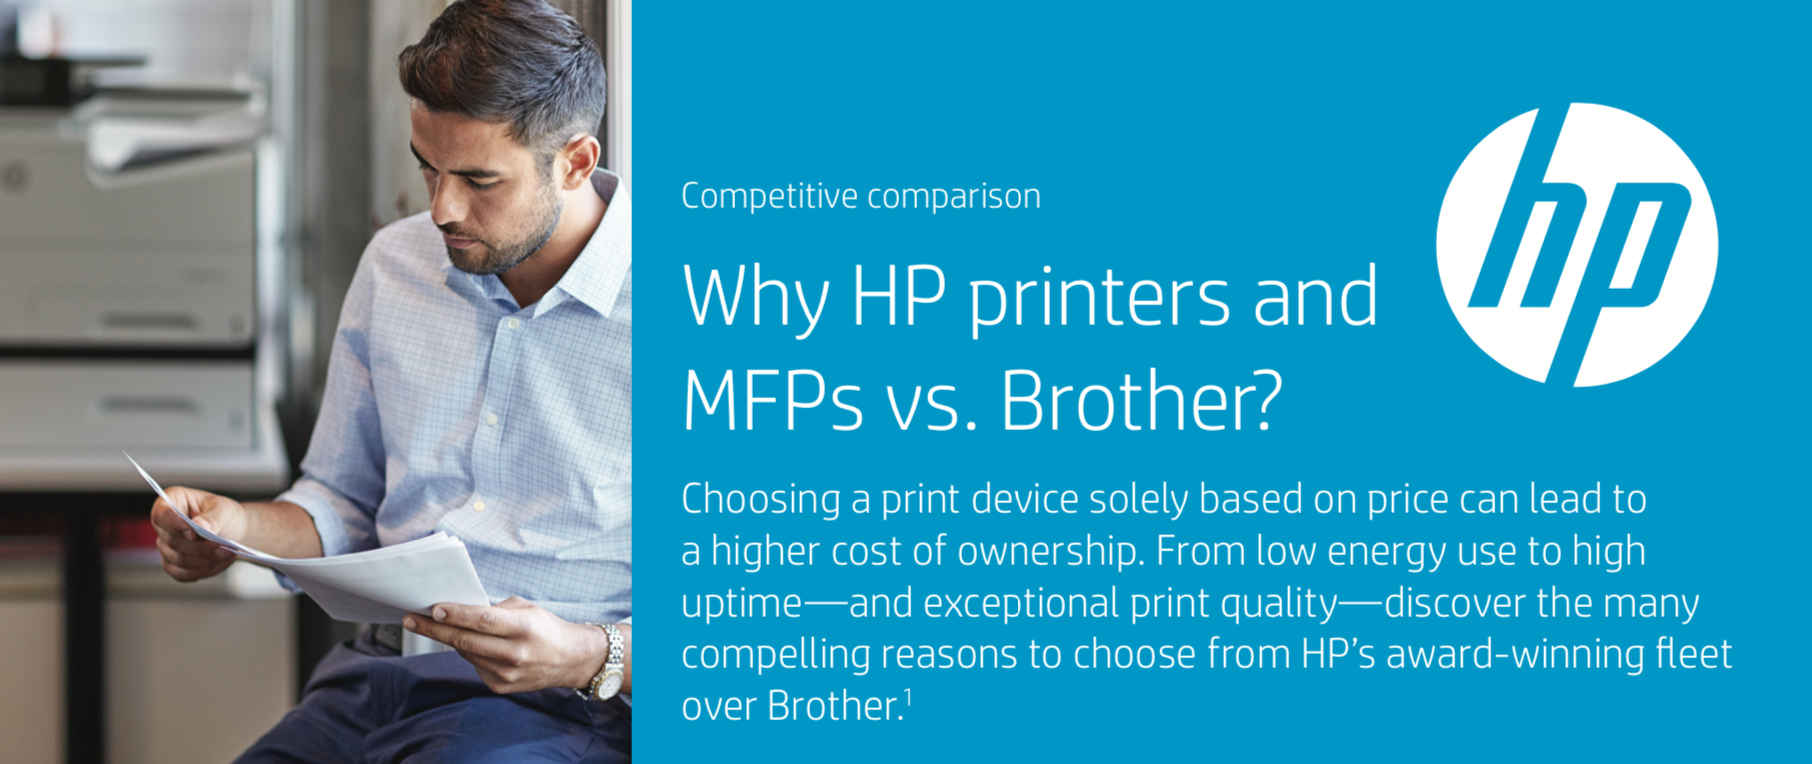 Why HP printers and MFPs vs Brother